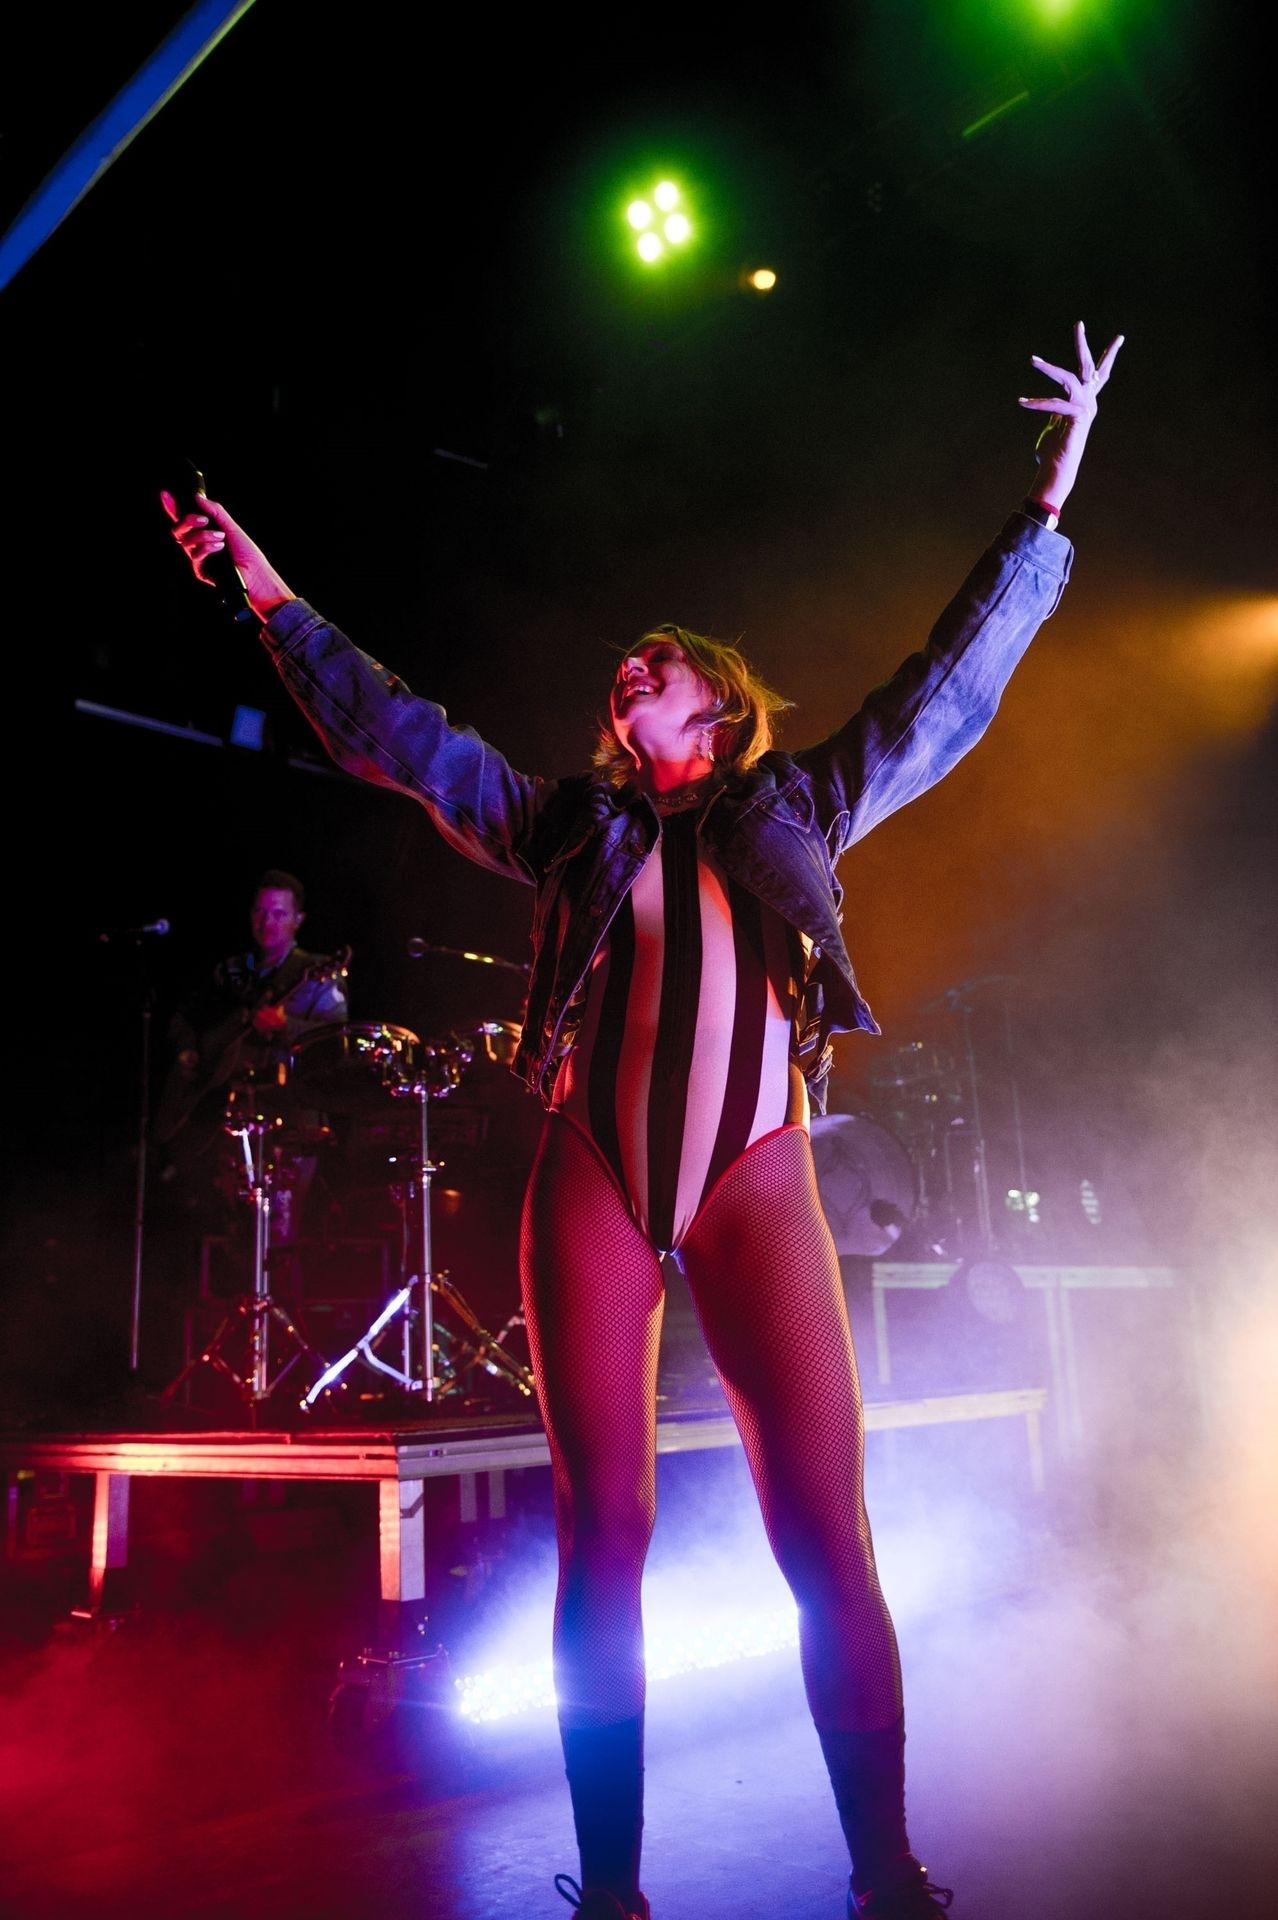 Tove Lo Is In Concert Performing Live At O2 Forum Kentish Town In London 0050